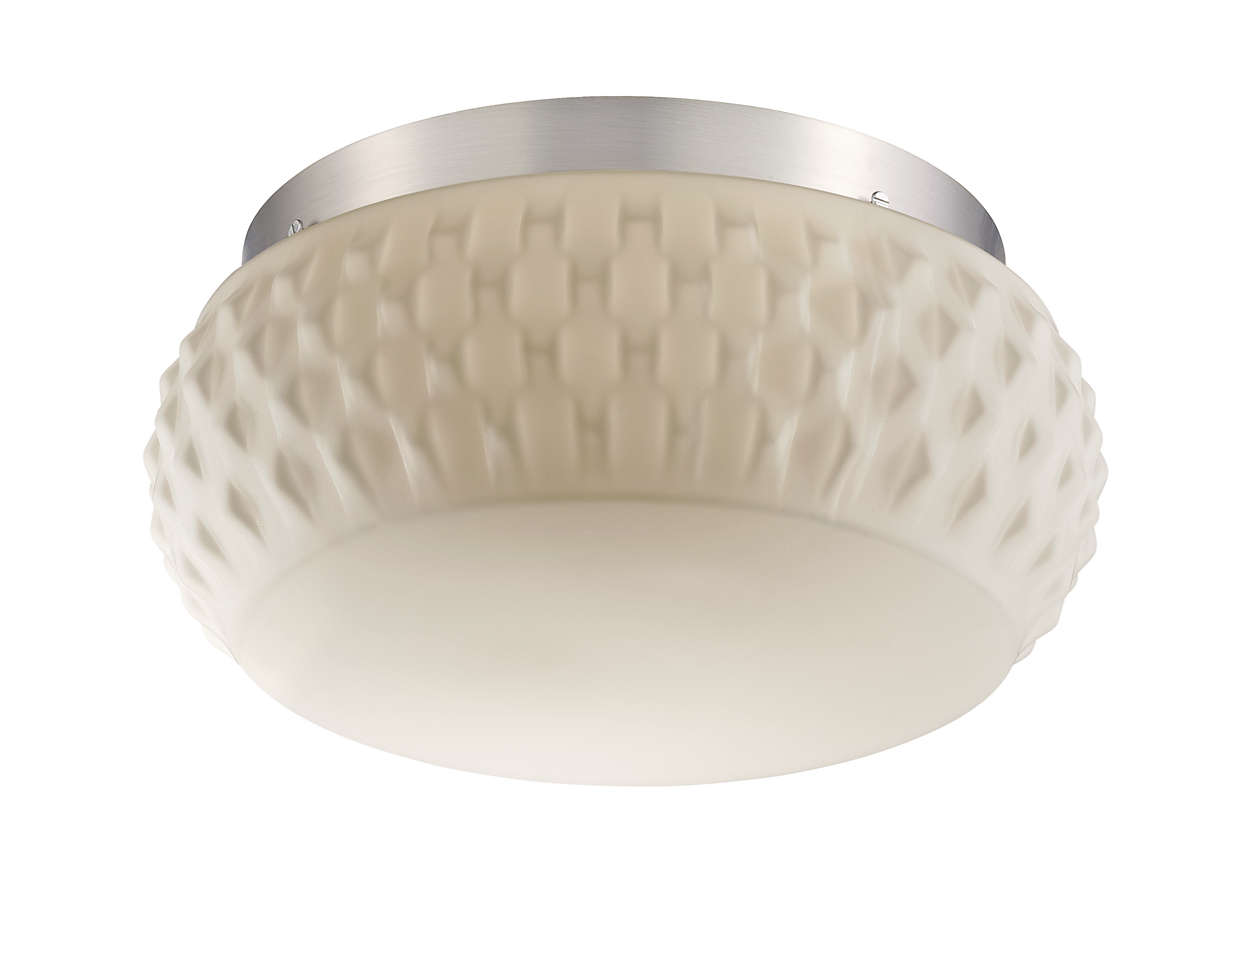 Ripple 2-light Ceiling in Satin Nickel finish